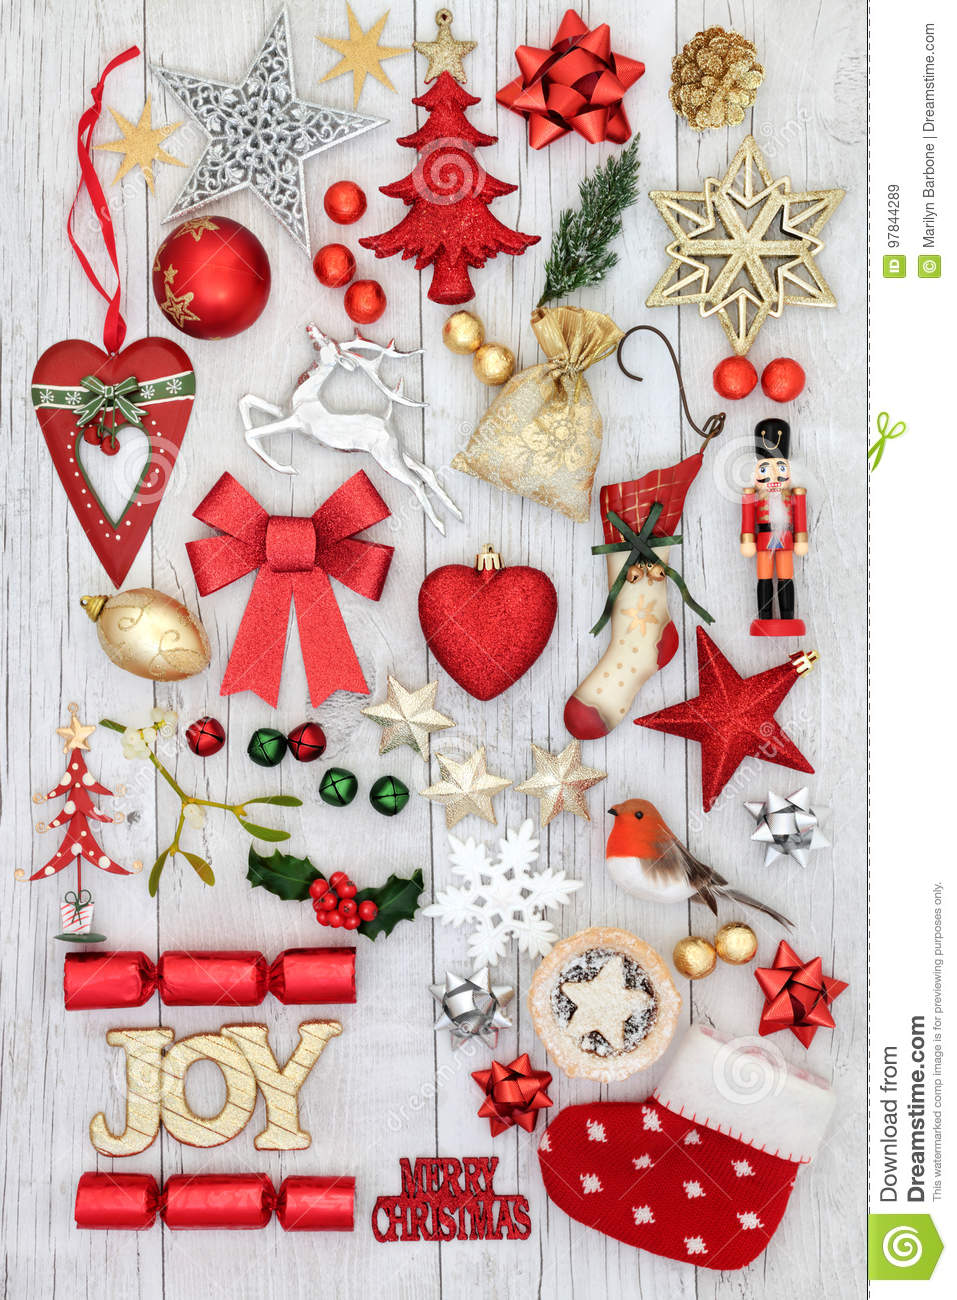 Christmas Joy Sign And Decorations Stock Image - Image of ornament ...